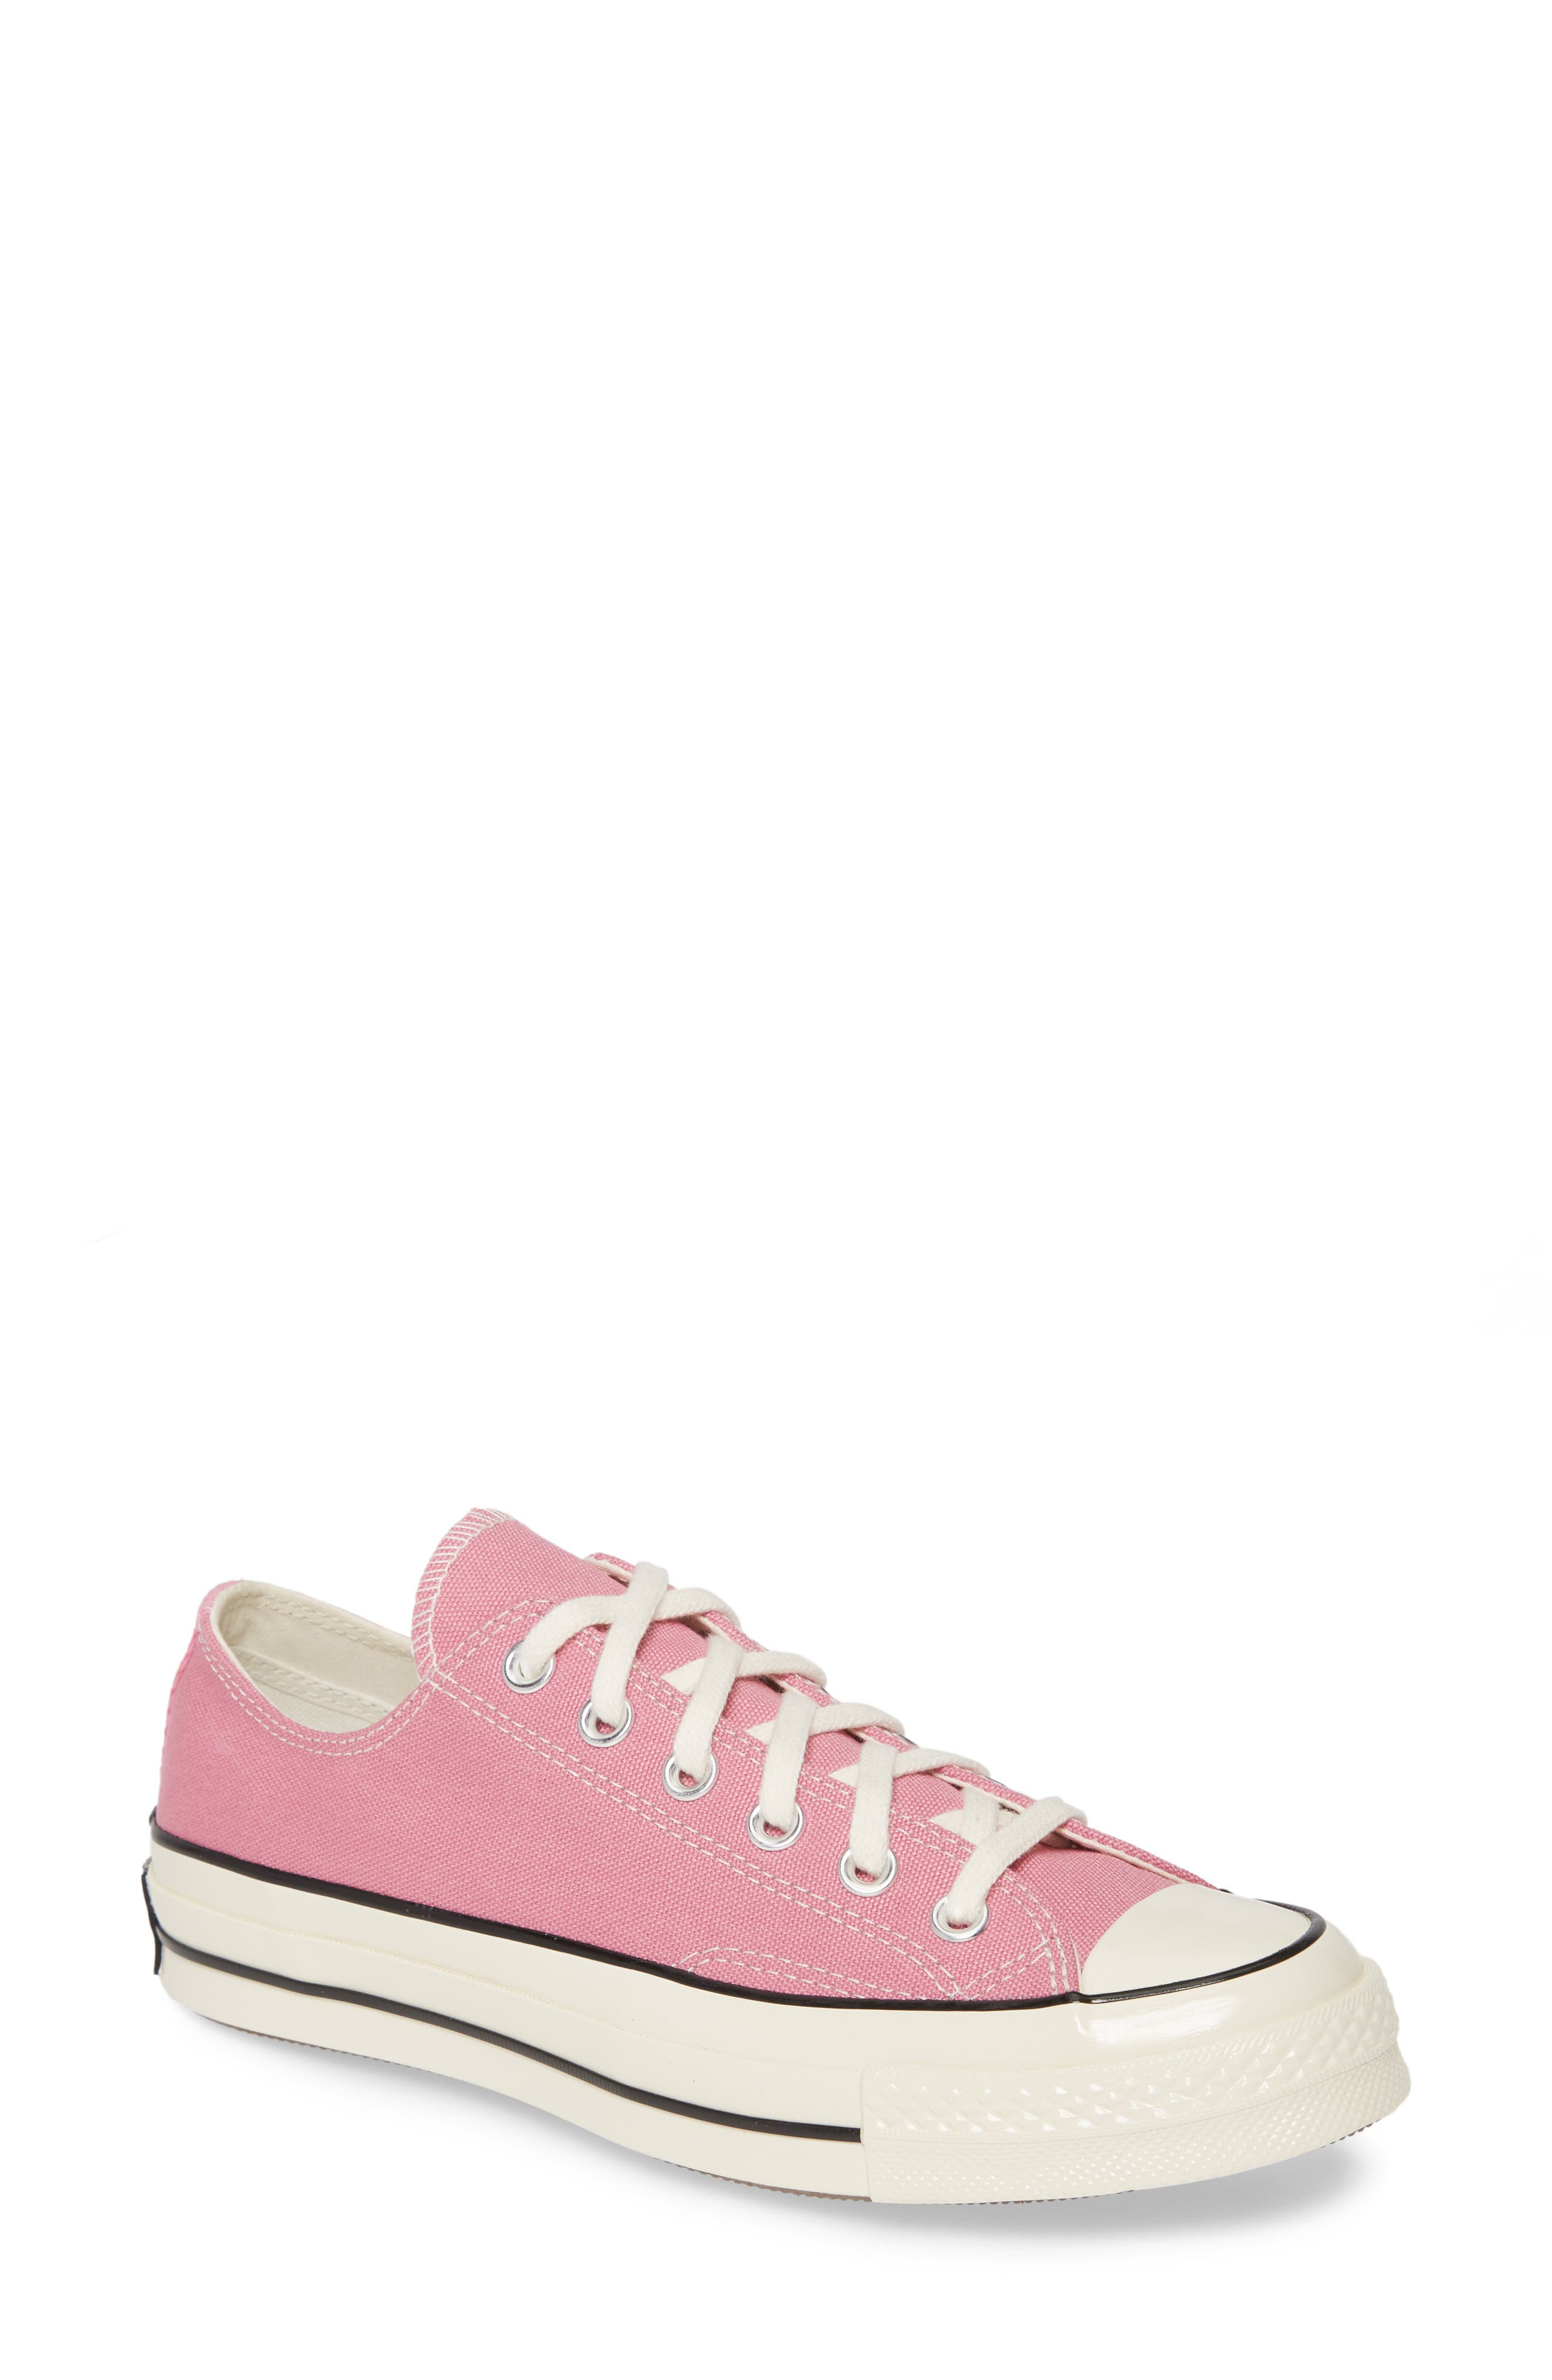 Women's Converse Shoes | Nordstrom